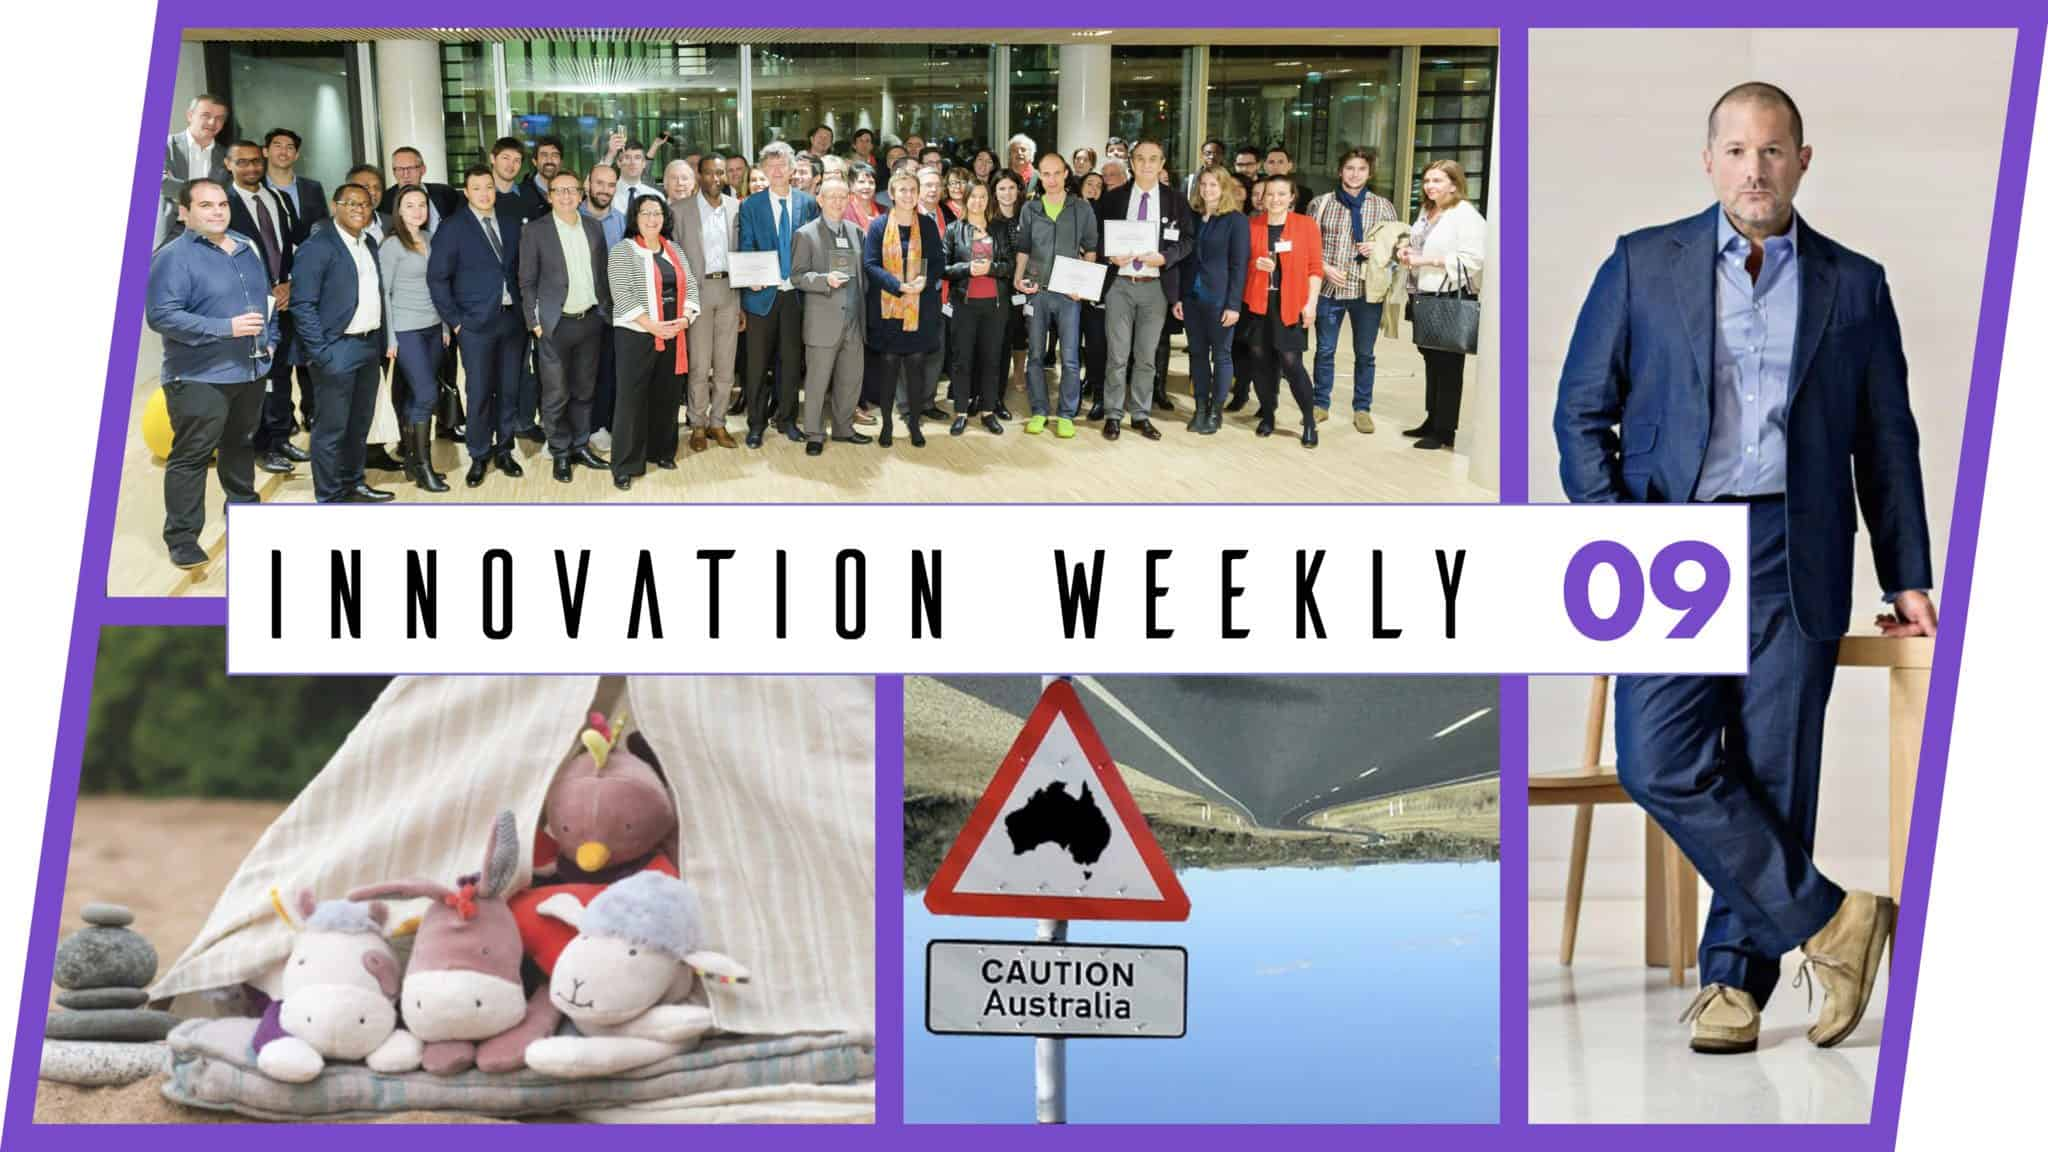 transition innovation weekly 09.001